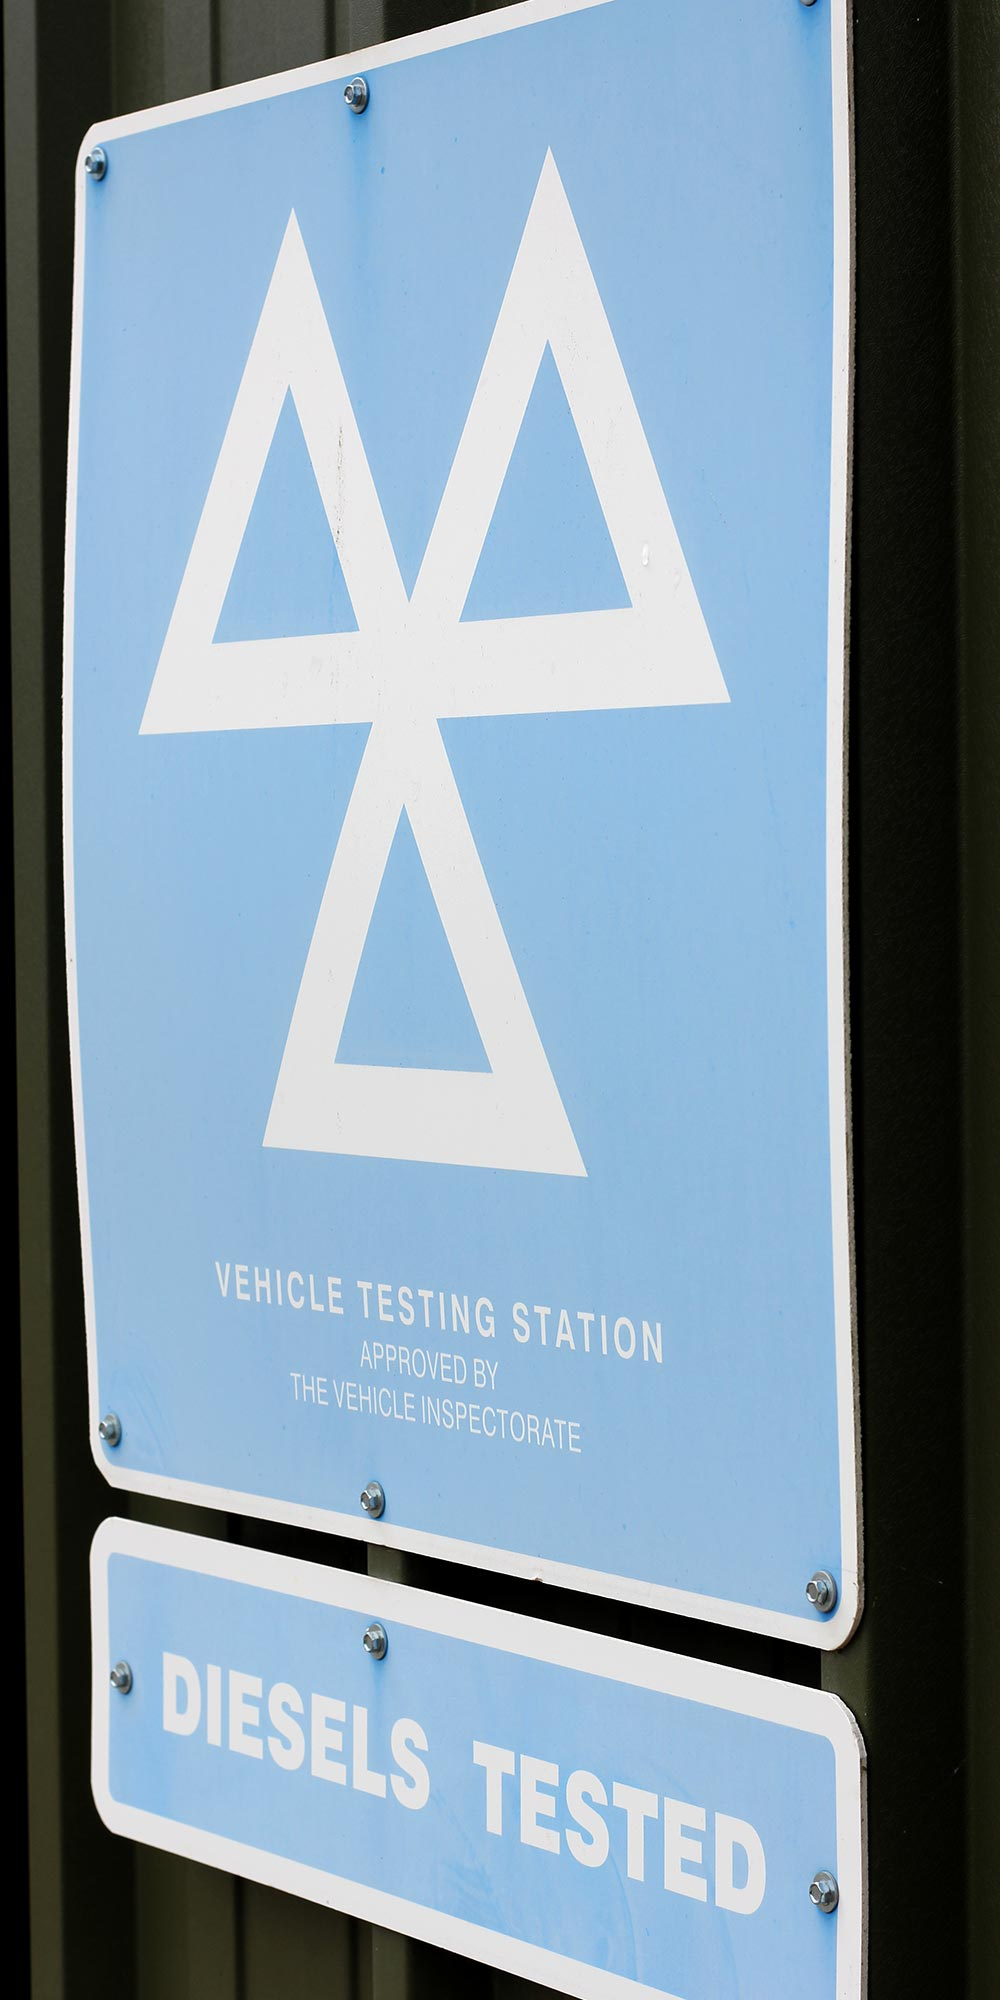 mot vehicle testing station sign at topcats racing workshop